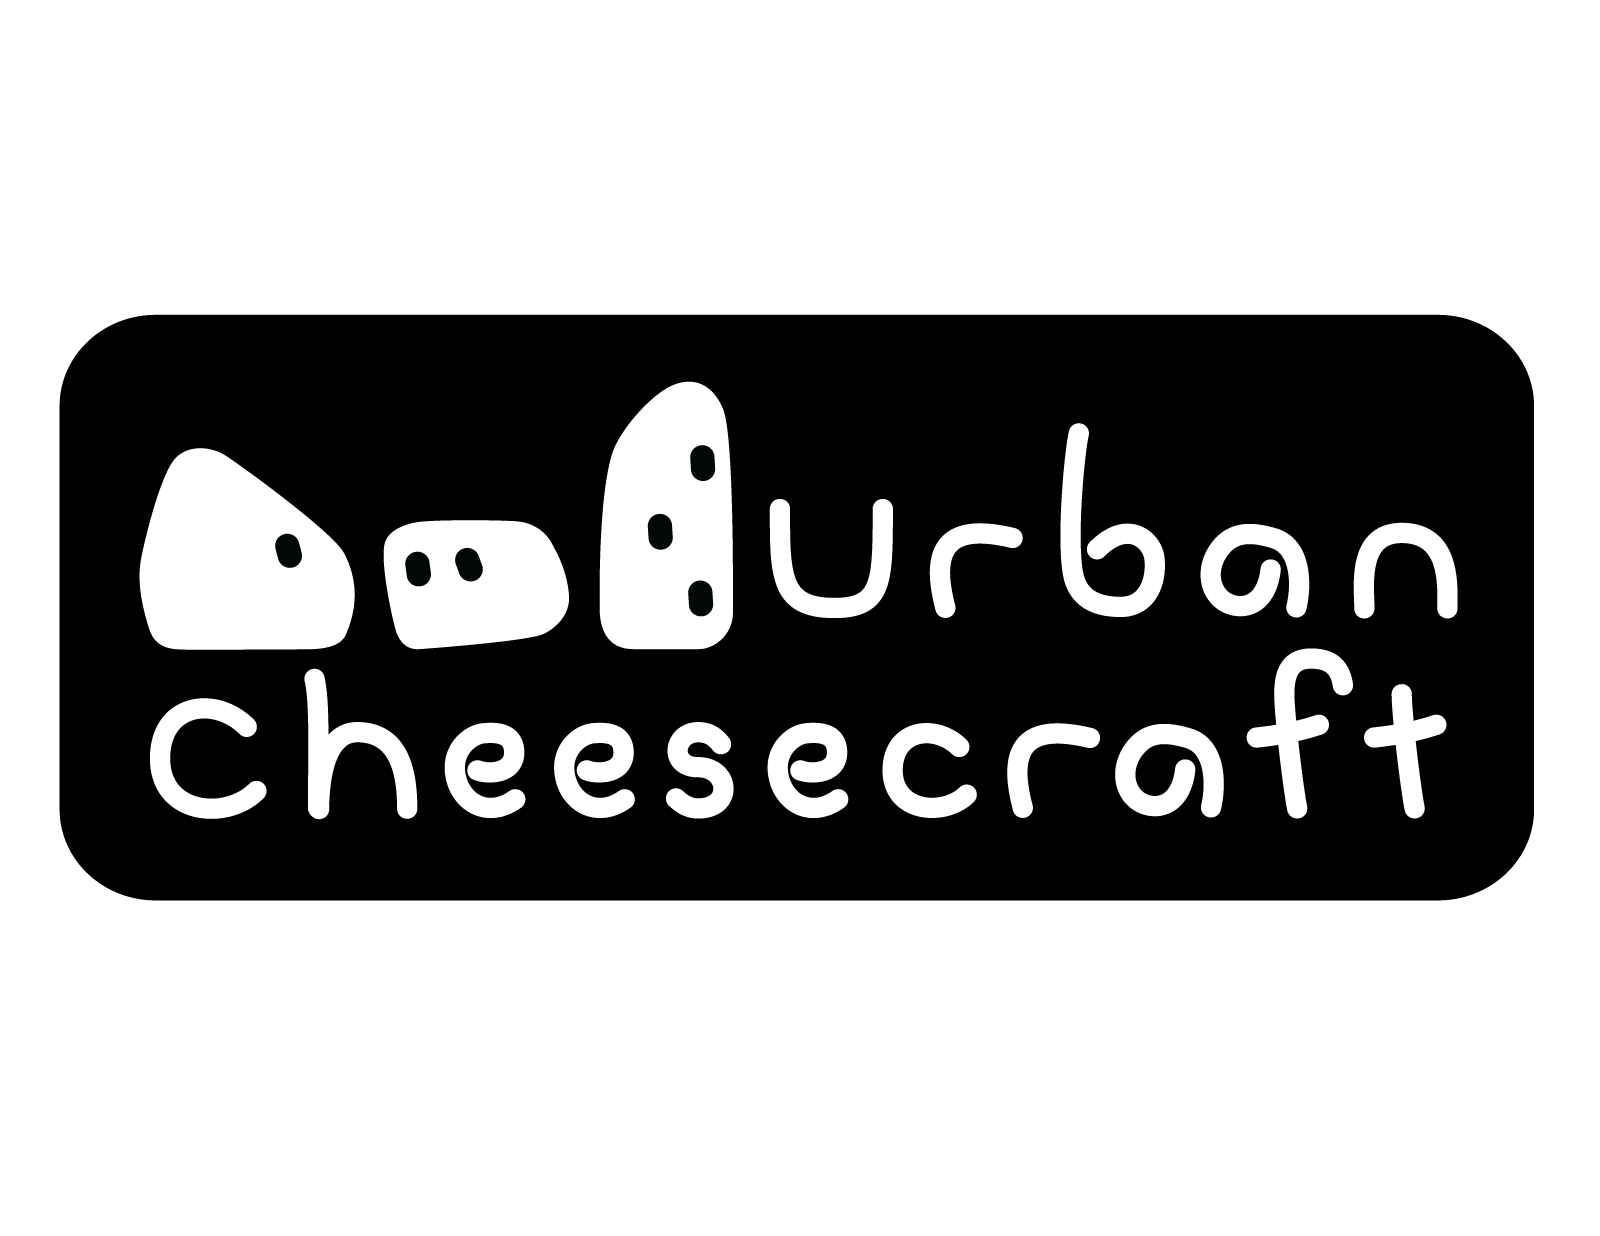 Urban Cheesecraft logo